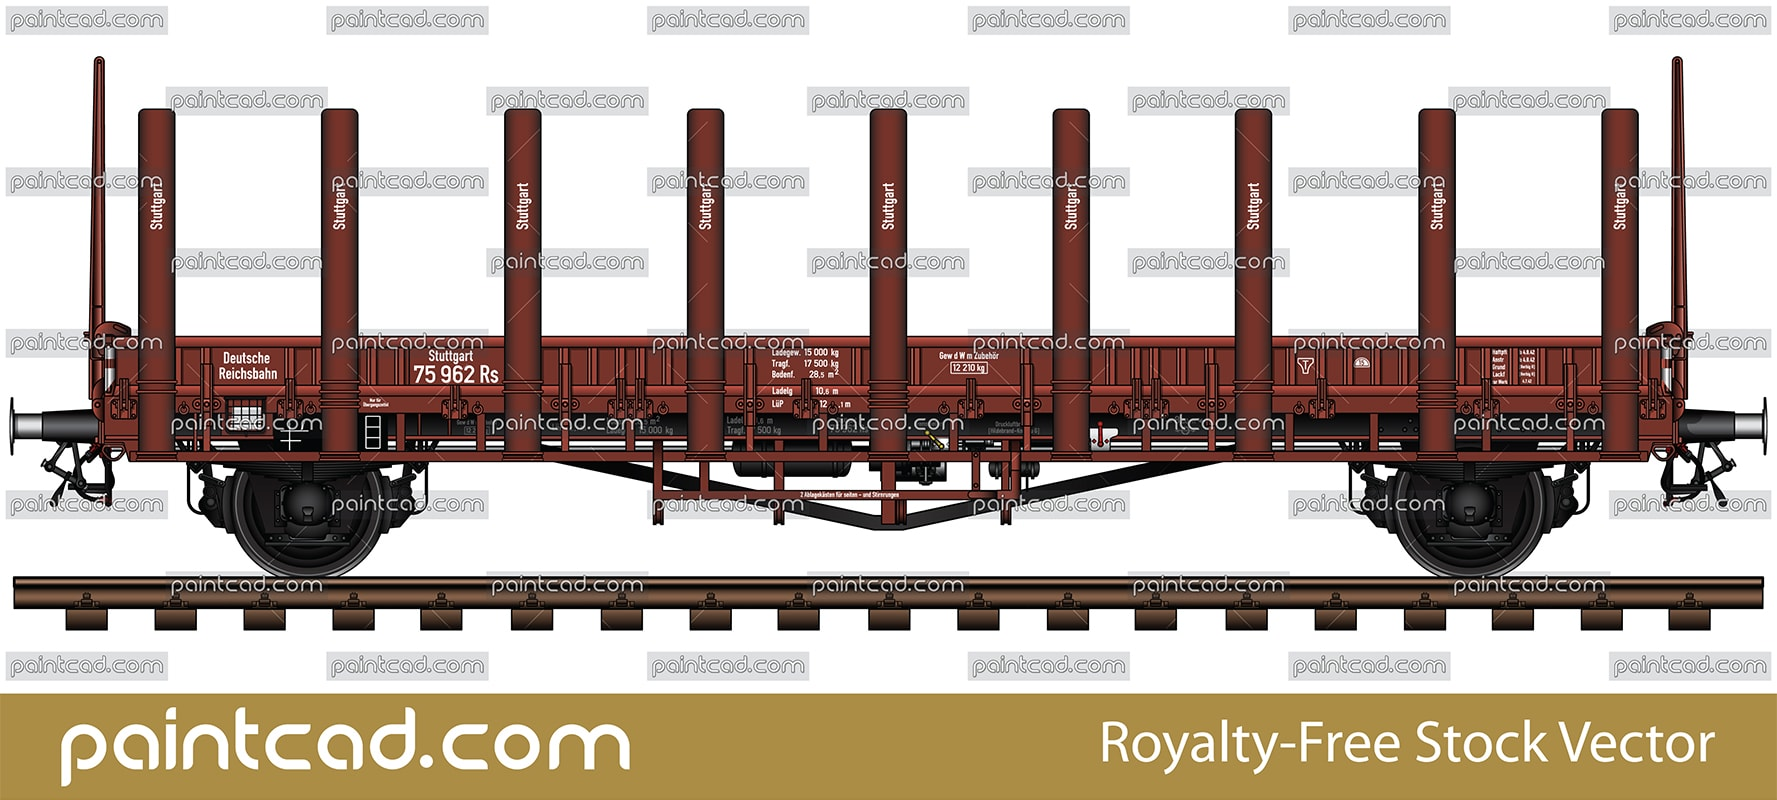 Vector illustration of flat goods wagon type (Rungenwagen Rs Stuttgart R 10) for transport of military vehicles and equipment, containers, steel and wood. These cars are used for the carriage of goods that are relatively resistant to weather conditions. They have metal vertical stanchions. Manufactured in Germany and was used for the needs of the Third Reich during the World War II. Colored and detailed AutoCAD drawing with railway tracks, all technical parameters, designations and markings. Isolated Güterwagen over white background.